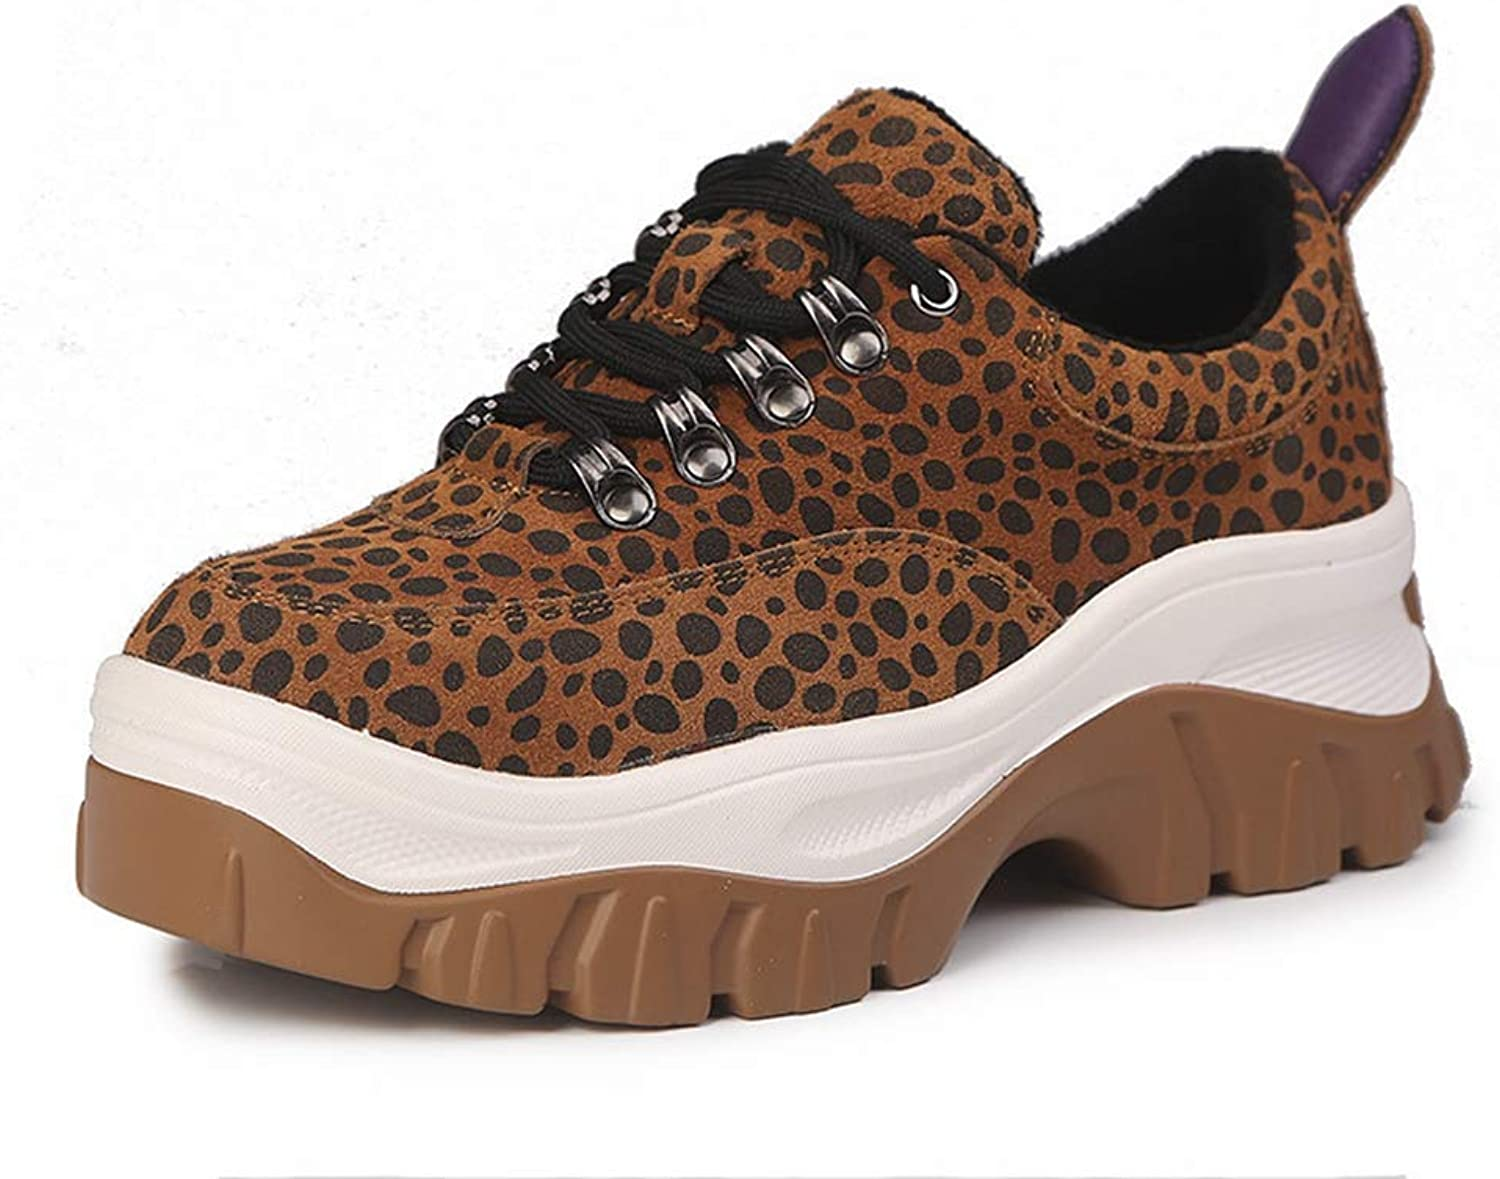 T-JULY Women's Leopard Suede Leather Vulcanize shoes Ladies High Platform Sneakers Wedges shoes